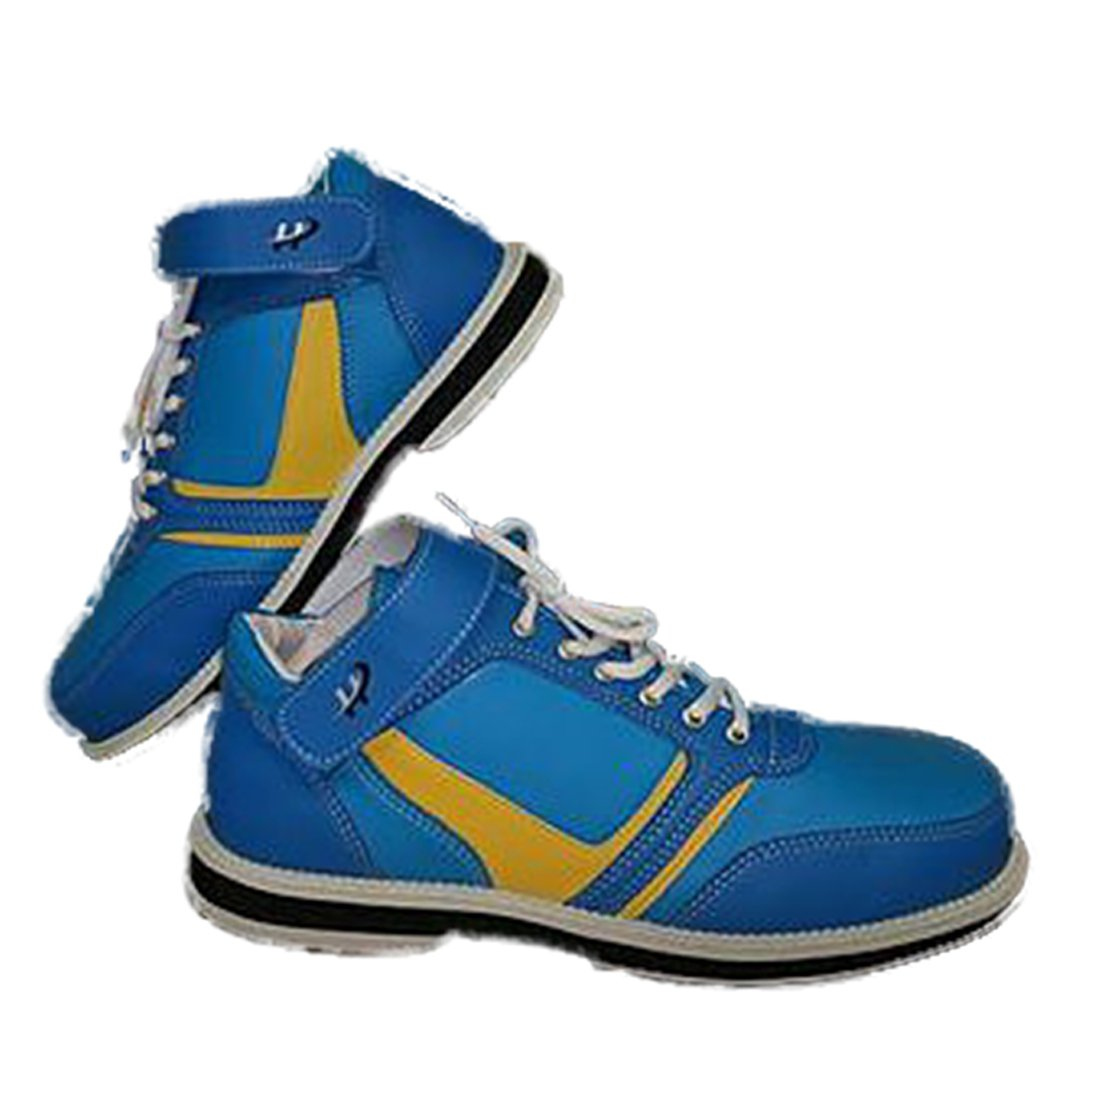 Mens High Top Bowling Shoe For Right Handed Bowler, Rubber Bottom, Foam Padded Tounge & Collar, unique style - Blue and Yellow | Size 14